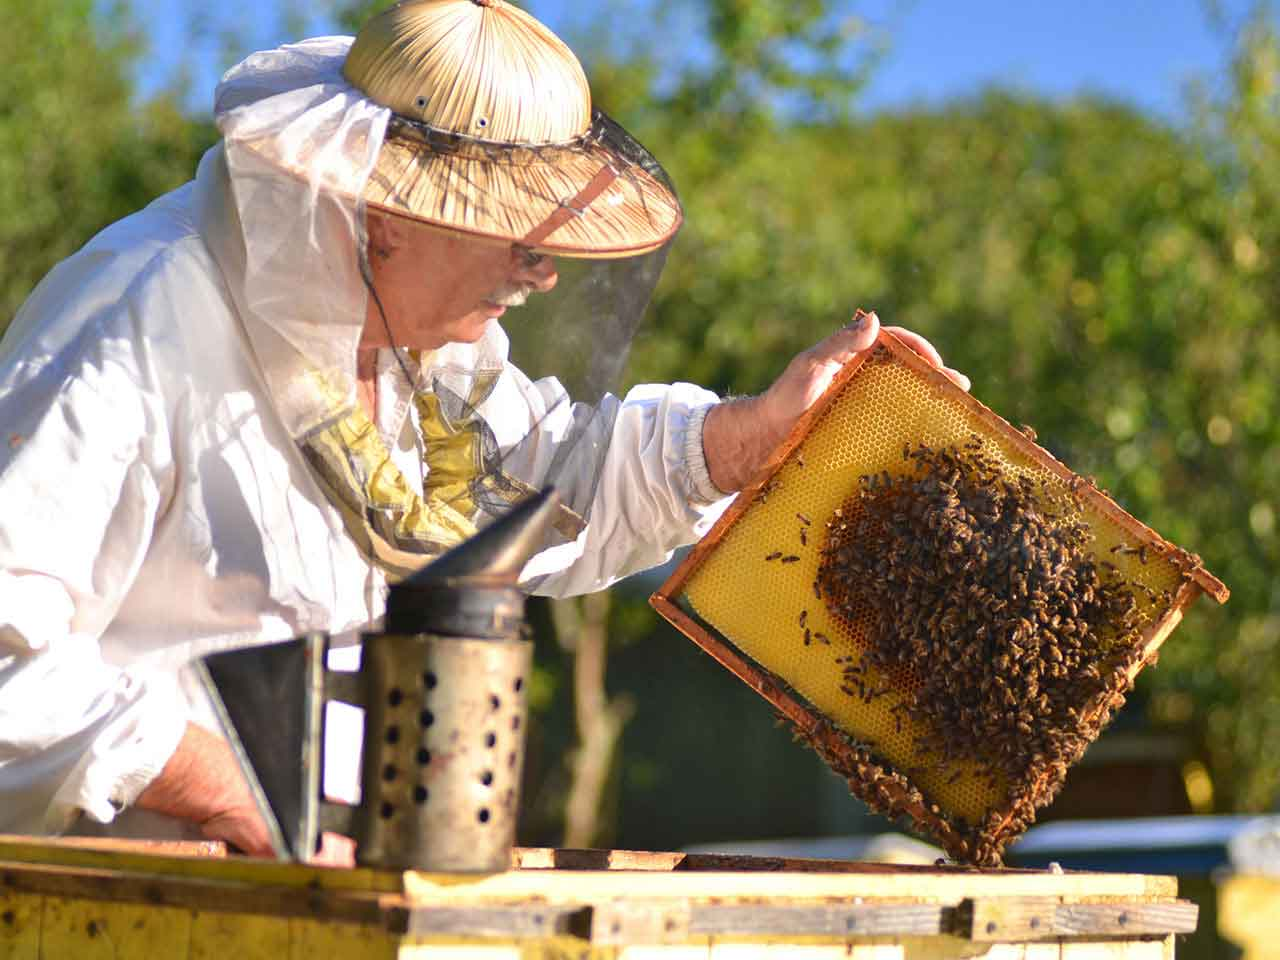 Senior man beekeeping